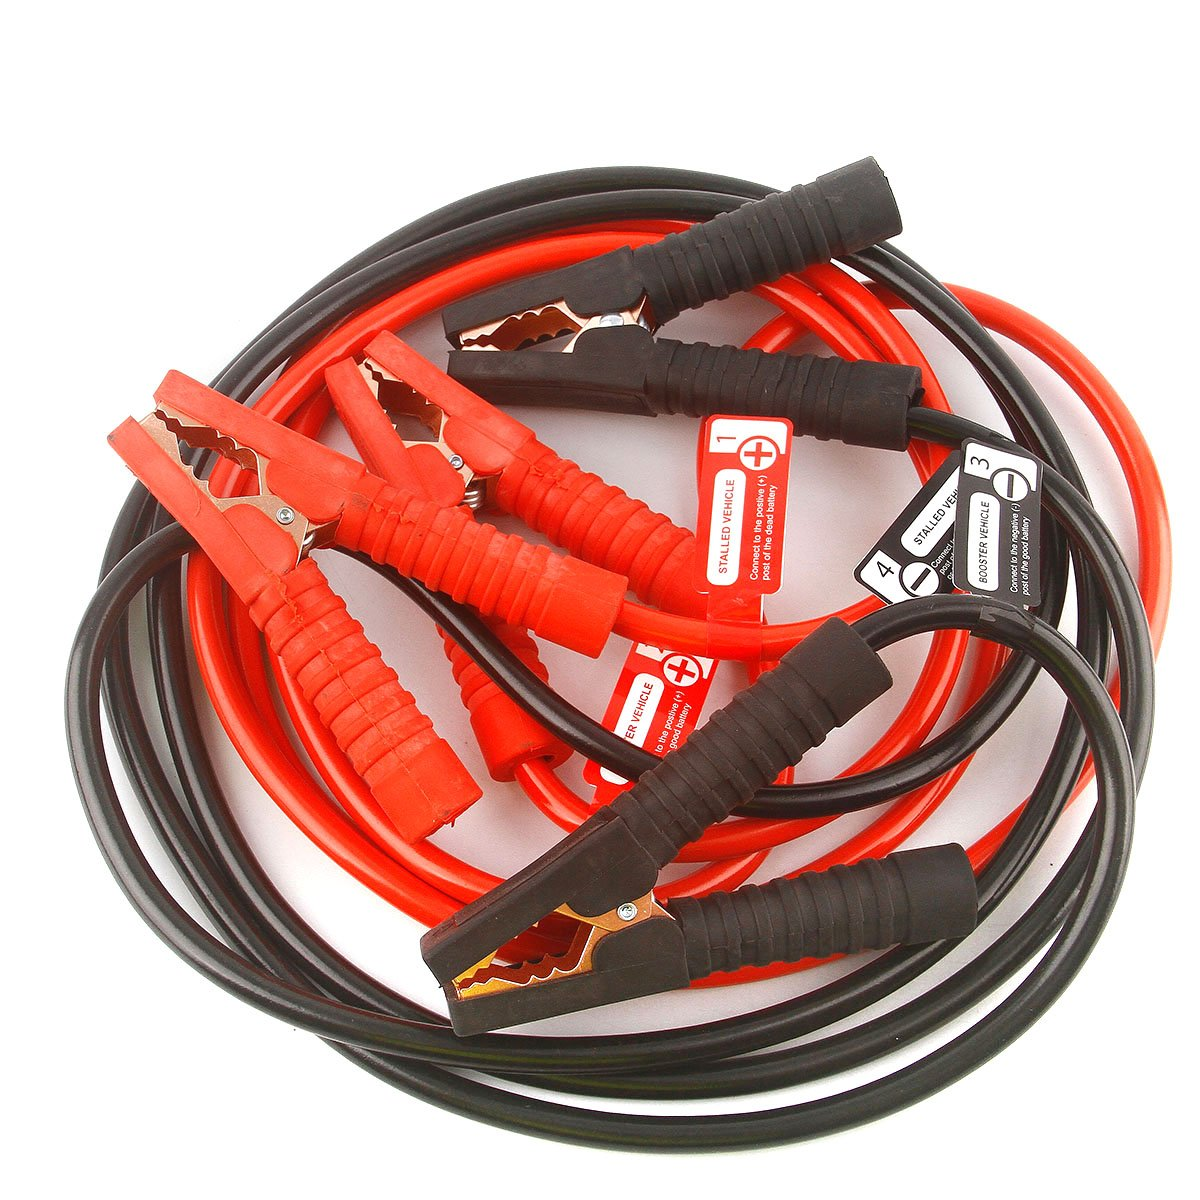 PEATOP Jumper Cables Heavy Duty 20ft 4 Gauge 900 AMP with Safety Gloves and Travel Bags